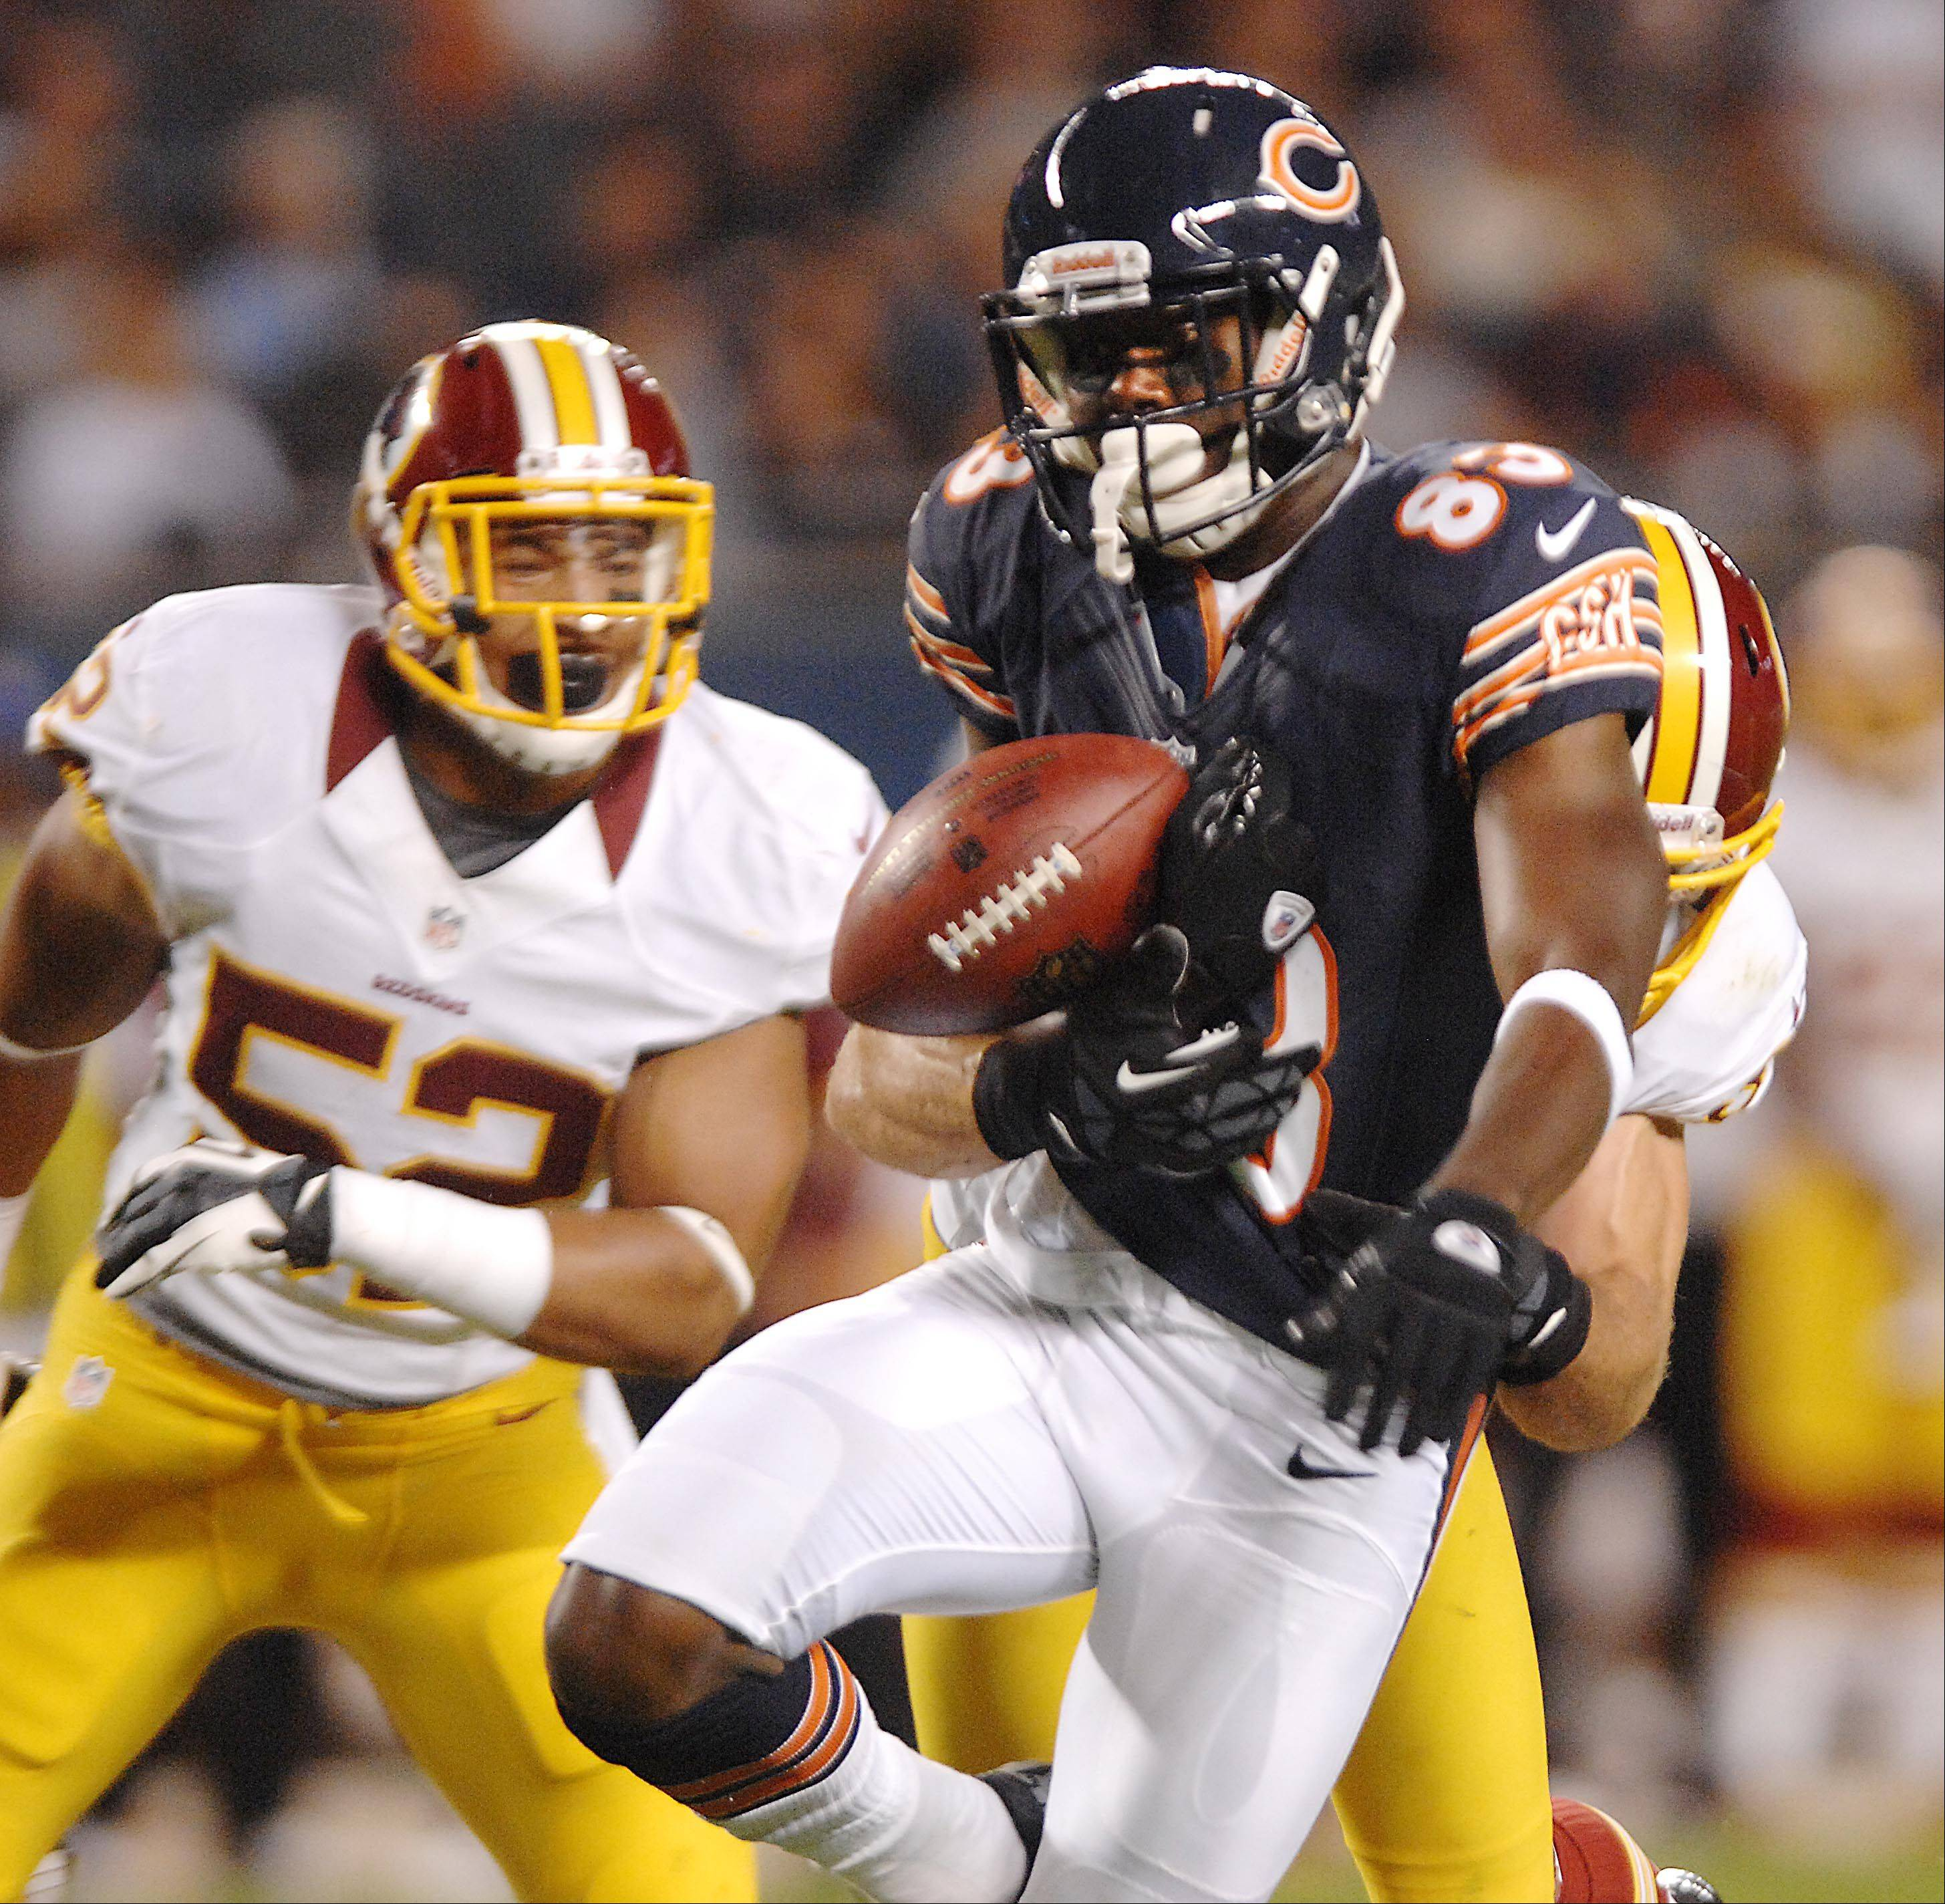 Chicago Bears wide receiver Chris Summers fumbles the ball after making a catch Saturday against the Washington Redskins in the second preseason game at Soldier Field in Chicago. The turnover led to a tying touchdown late in the game for the Redskins.